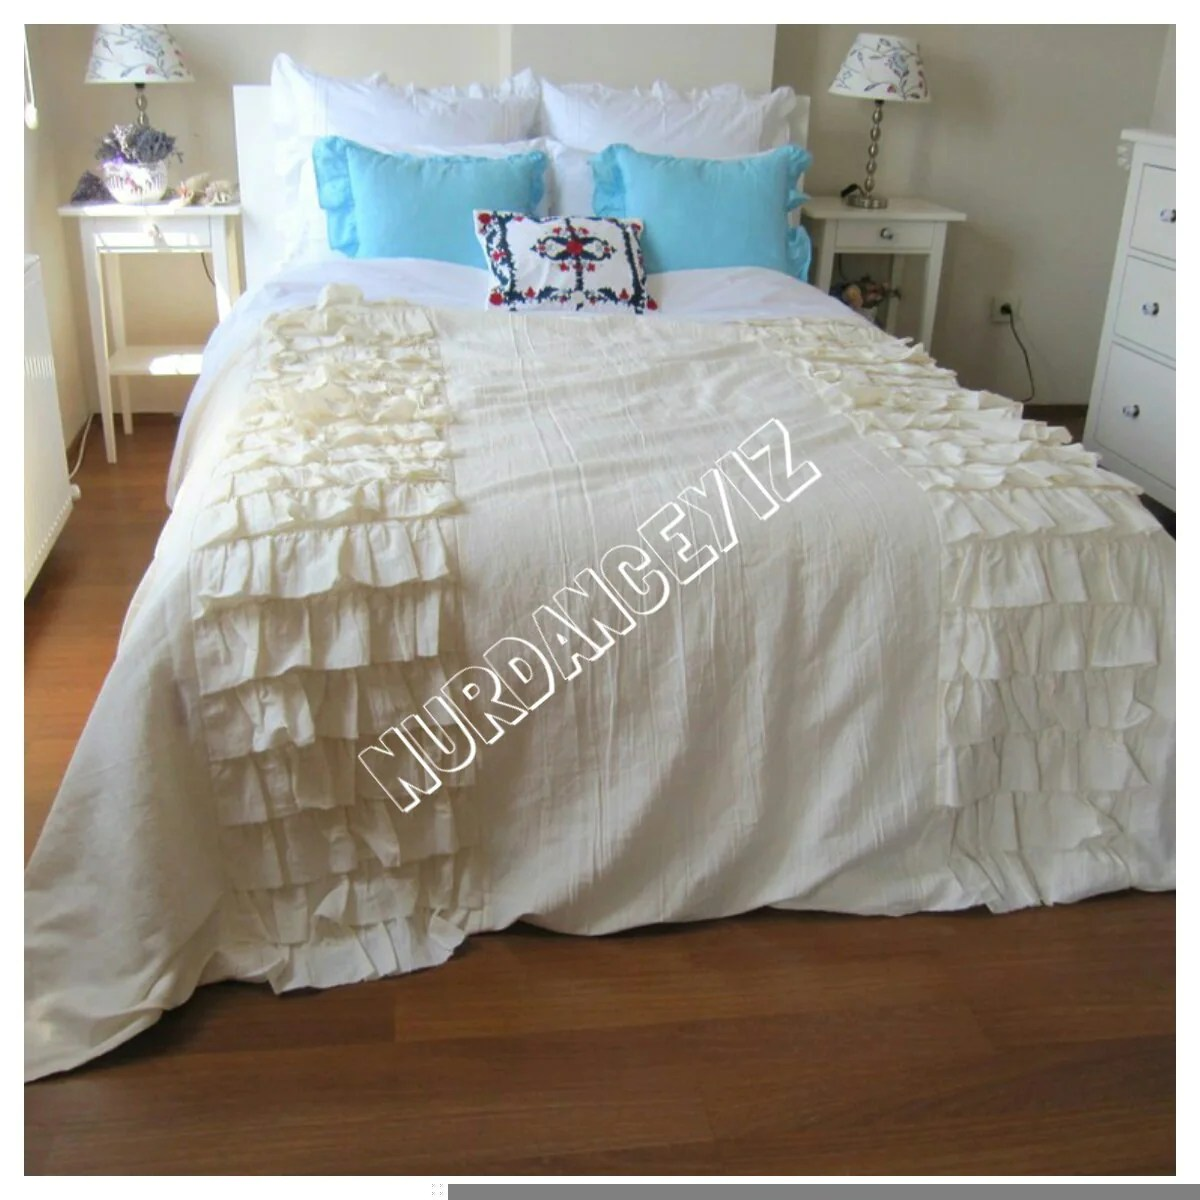 Cotton Bed Linen Sale Sale Tier Ruffled Bedding Queen King Duvet Cover Bed Linen French Country Farmhouse Home Shabby Chic Beach Bedding Nurdanceyiz Turkey